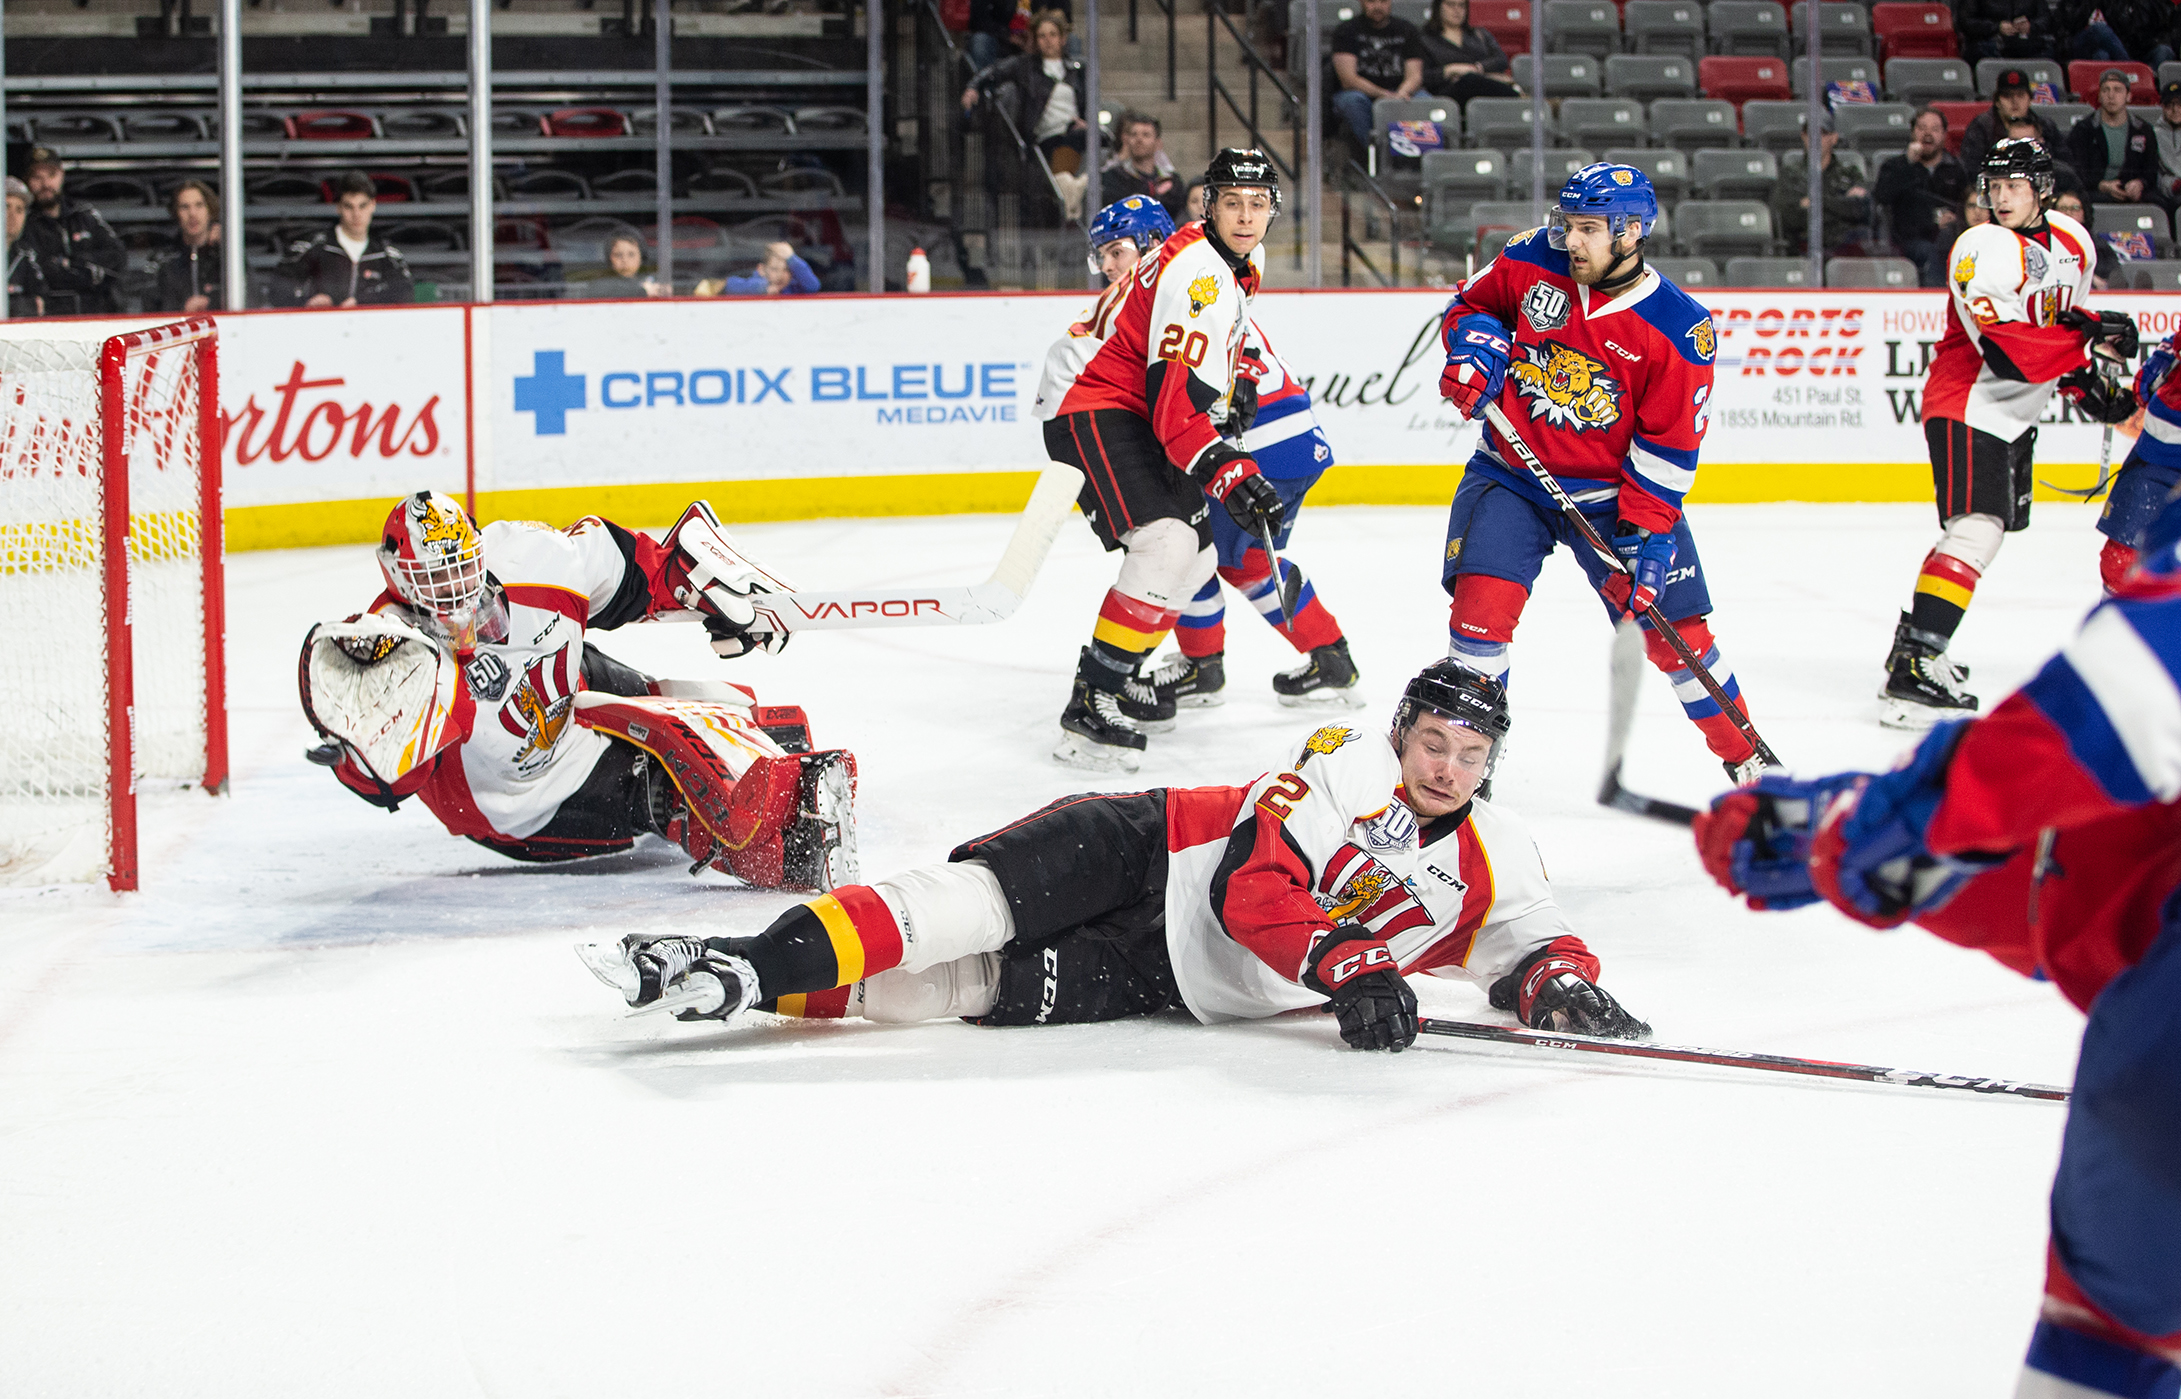 Moncton Hockey Photography: Baie-Comeau Drakkar vs Moncton Wildcats, QMJHL Playoff Action